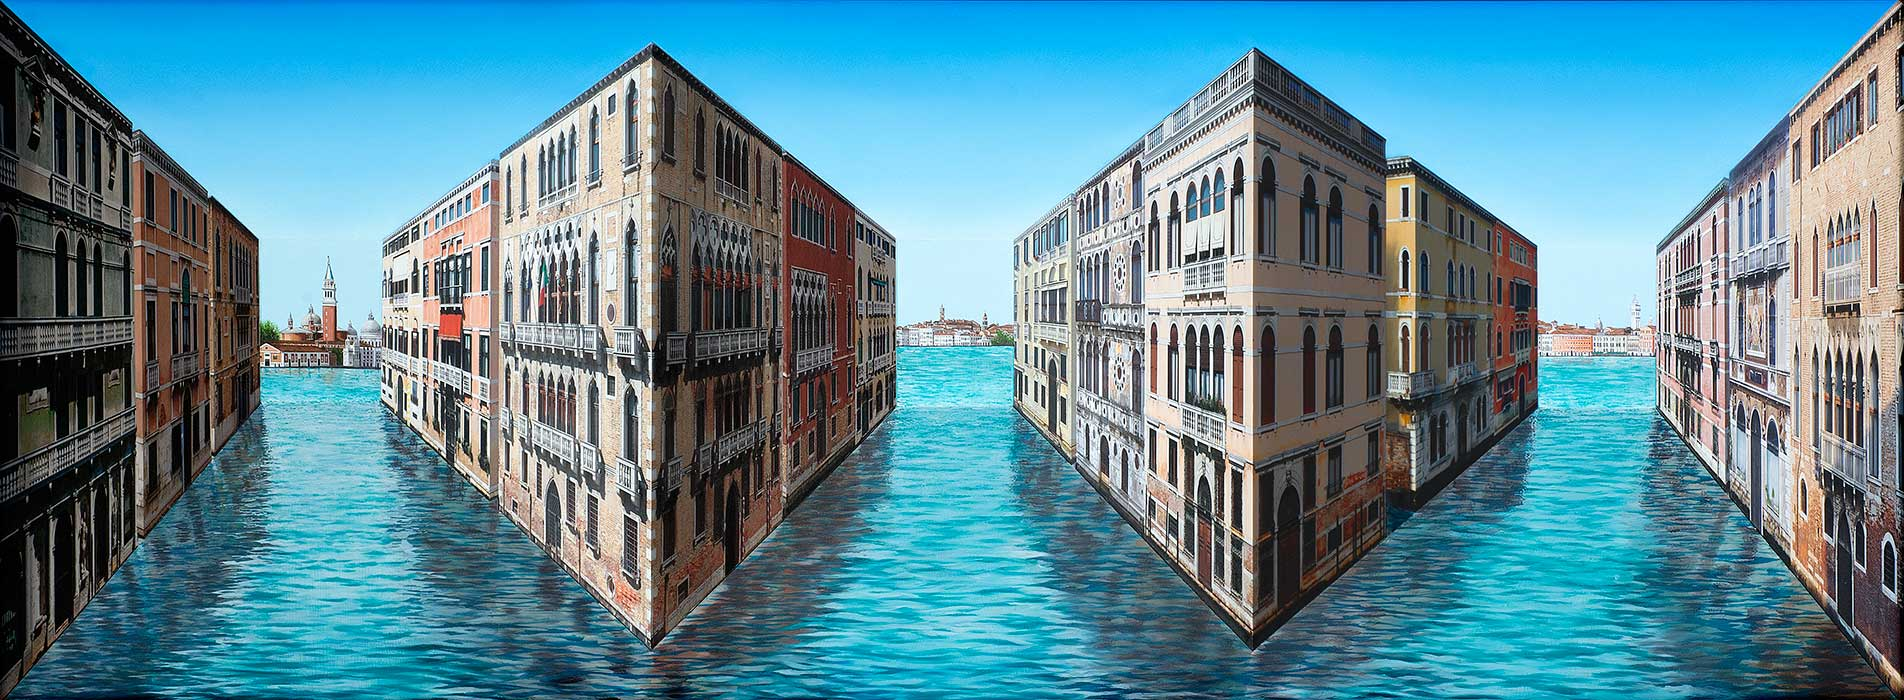 Venice Views <p>2015 | Edition 5 | 75 x 173 x 26 cm / 29.5 x 68 x 10 in</p>